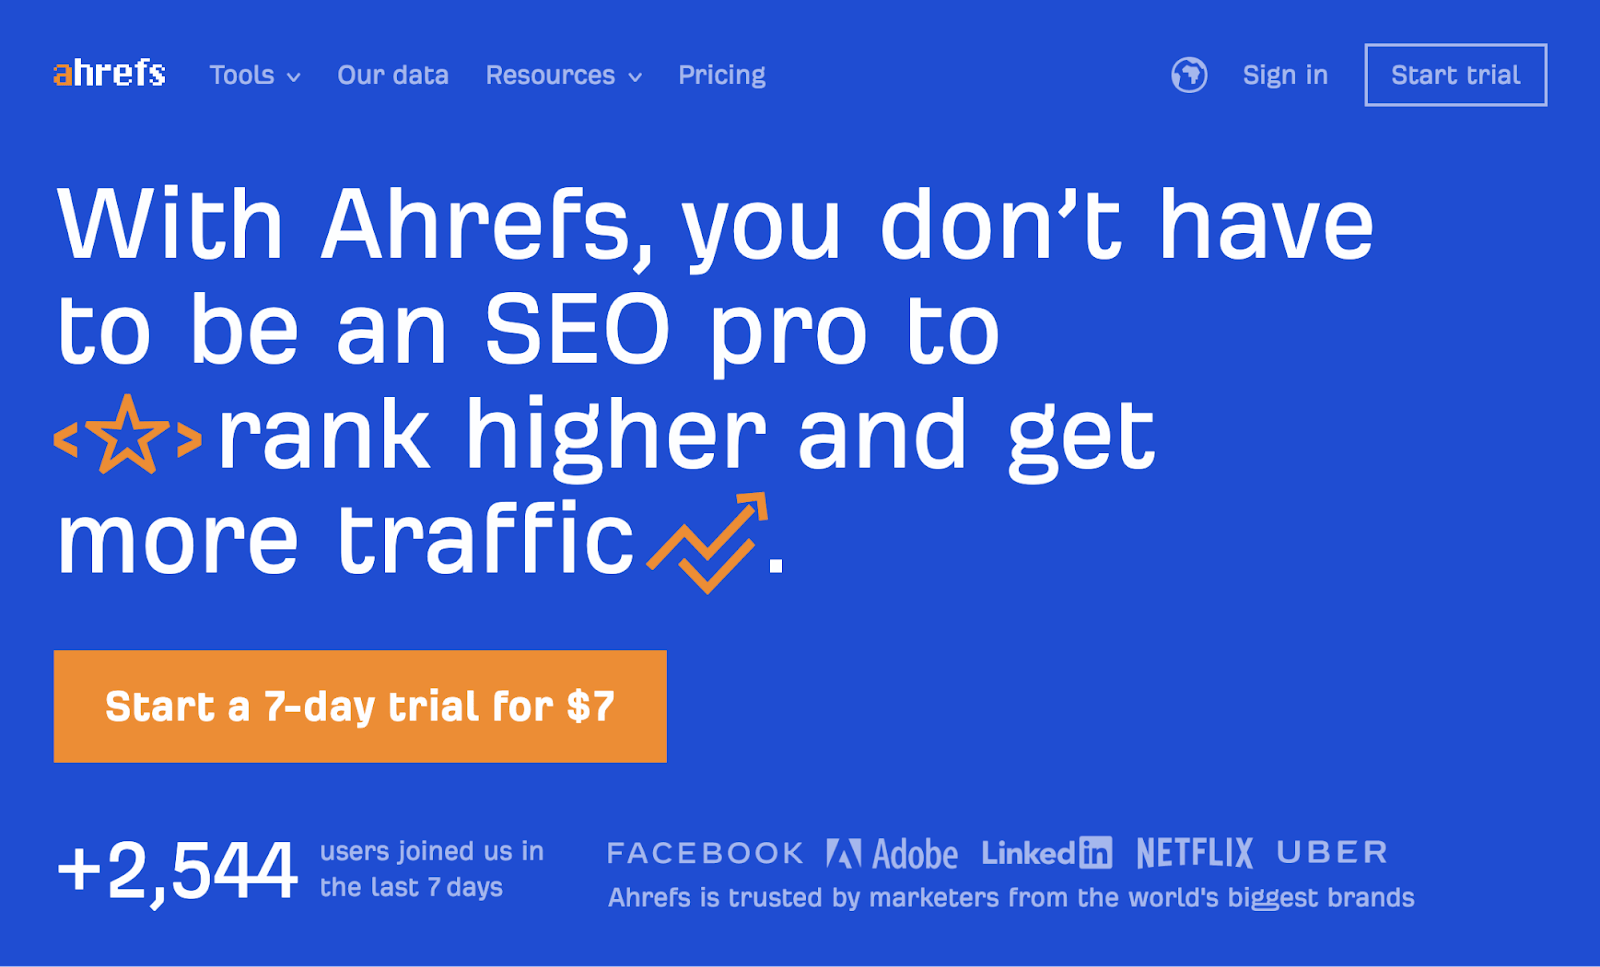 "13 ahrefs english ""srcset ="" https://ahrefs.com/blog/wp-content/uploads/2020/10/13-ahrefs-english.png 1600w, https://ahrefs.com/blog/wp-content/ Uploads / 2020/10/13-ahrefs-english-680x411.png 680w, https://ahrefs.com/blog/wp-content/uploads/2020/10/13-ahrefs-english-768x464.png 768w, https: //ahrefs.com/blog/wp-content/uploads/2020/10/13-ahrefs-english-1536x928.png 1536w ""data-size ="" (maximum width: 1600px) 100vw, 1600px"